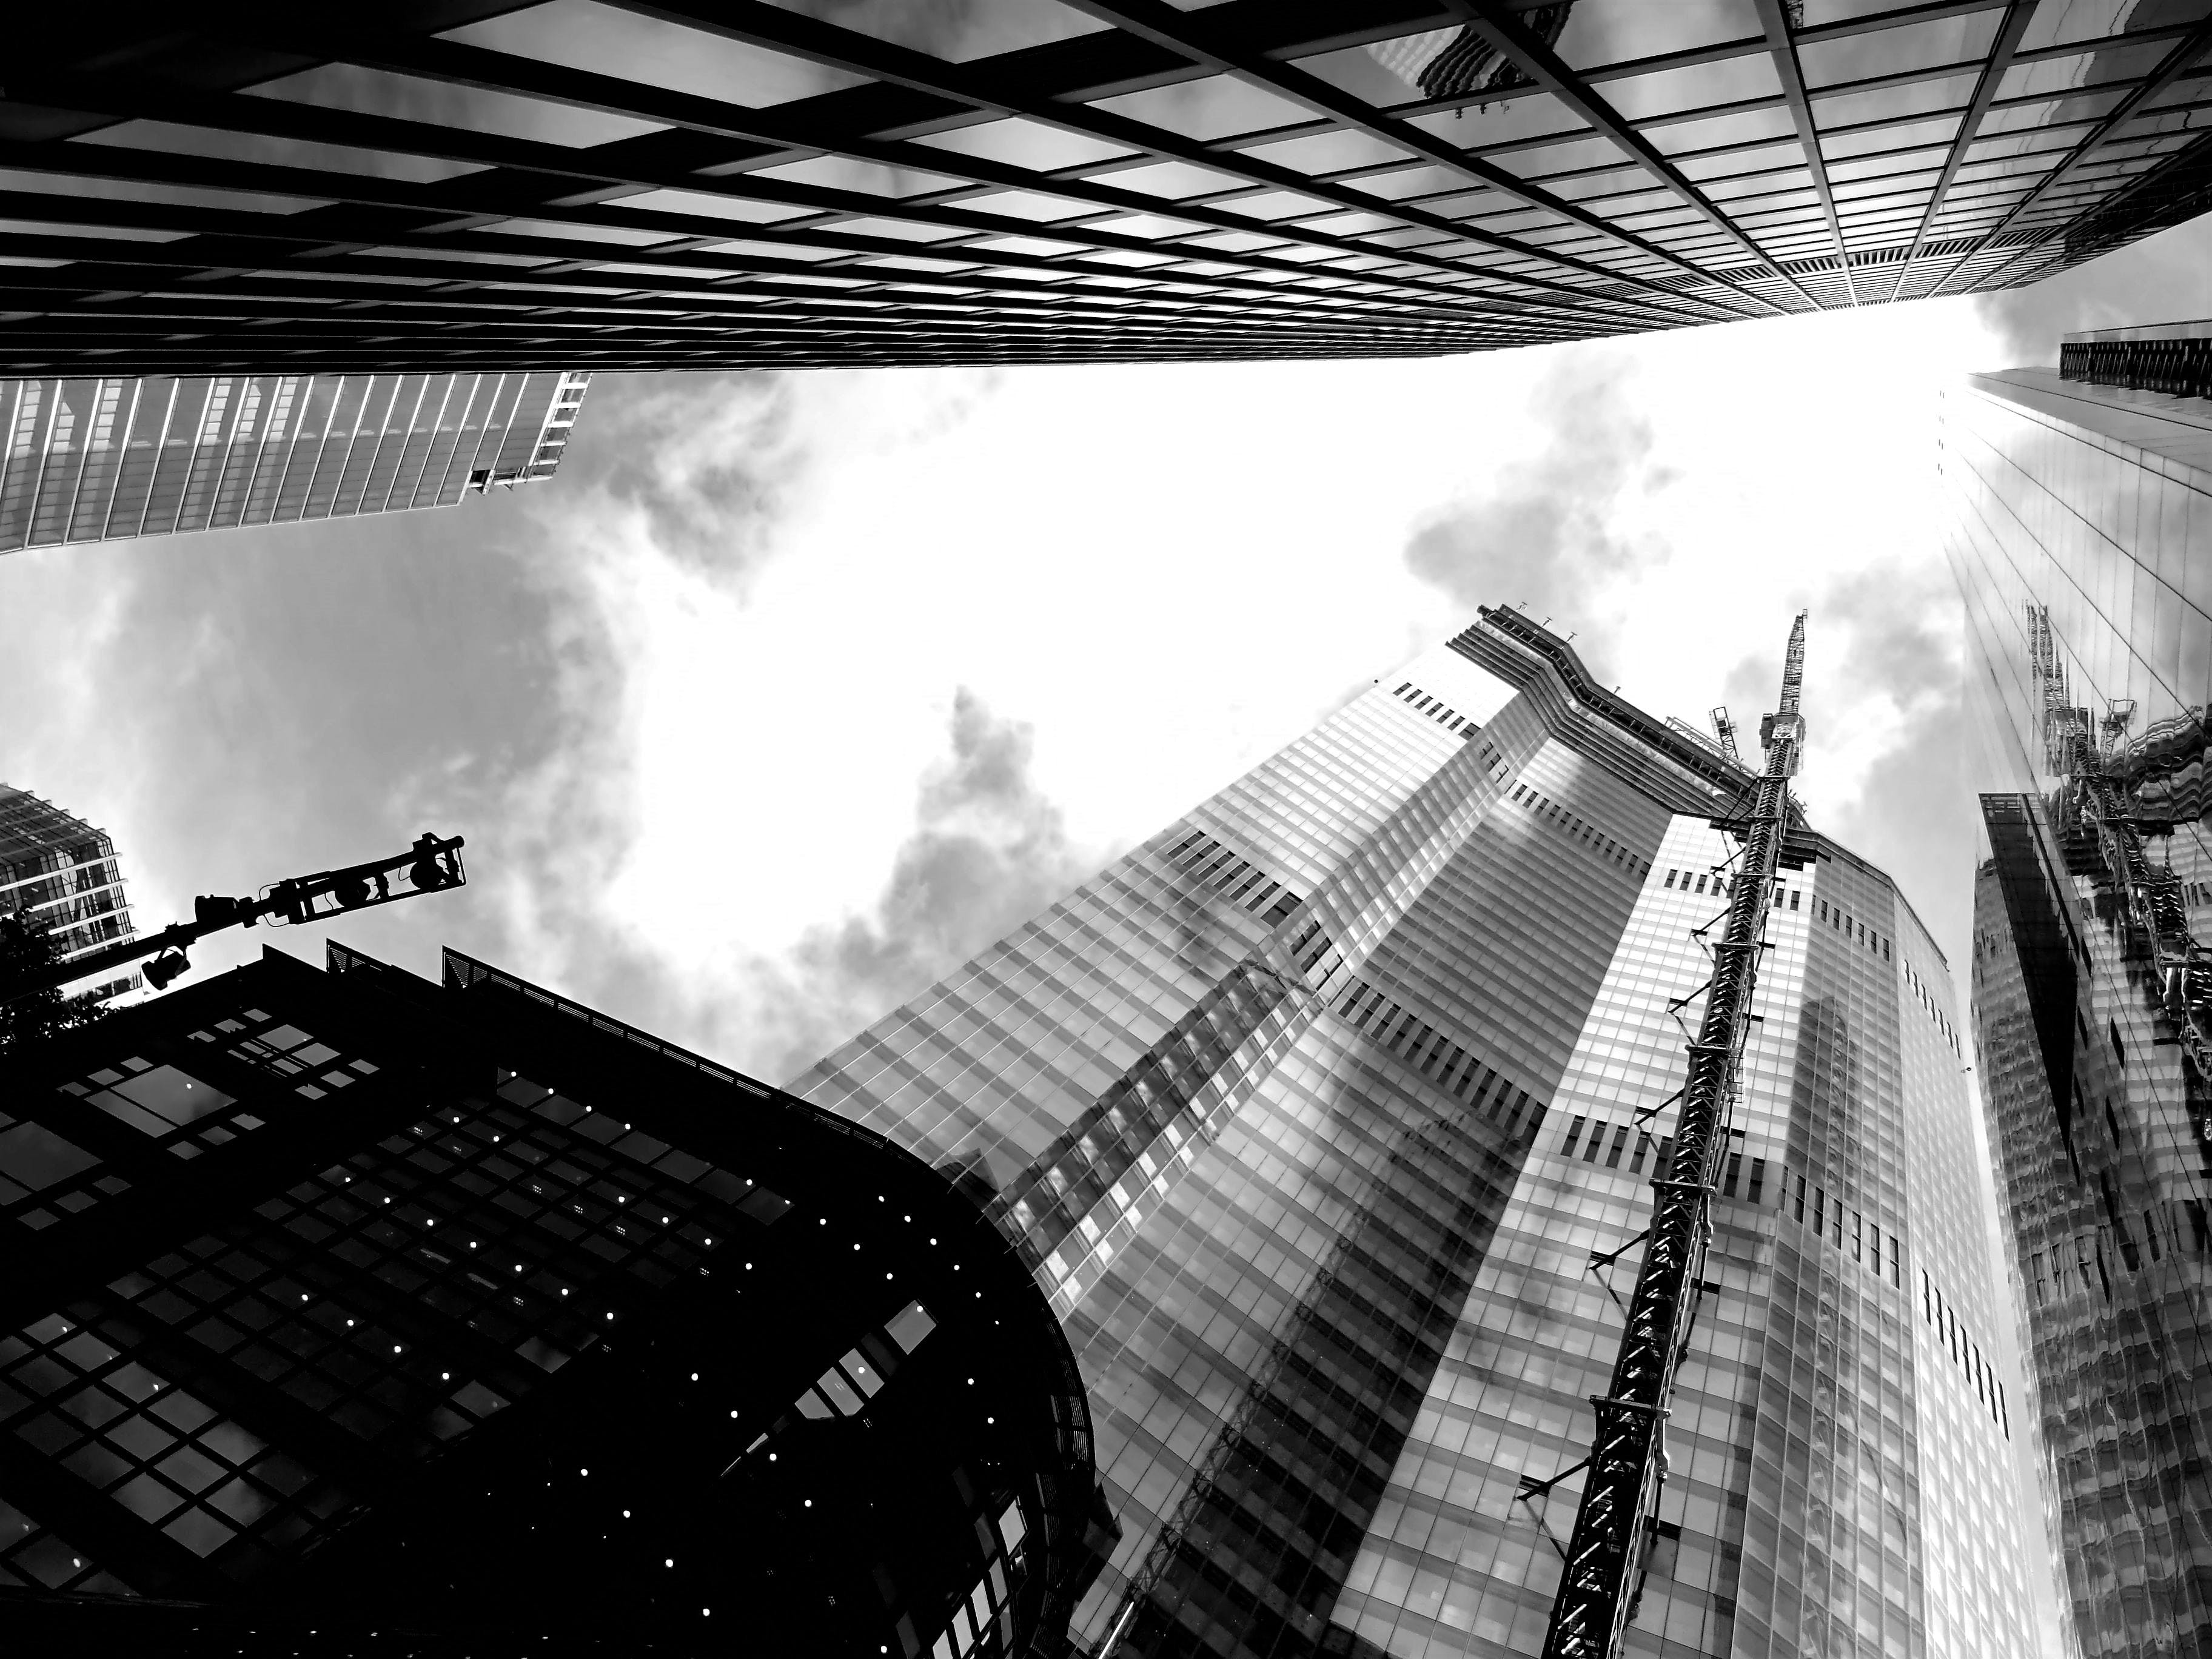 Grayscale Low-angle View of High-rise Building